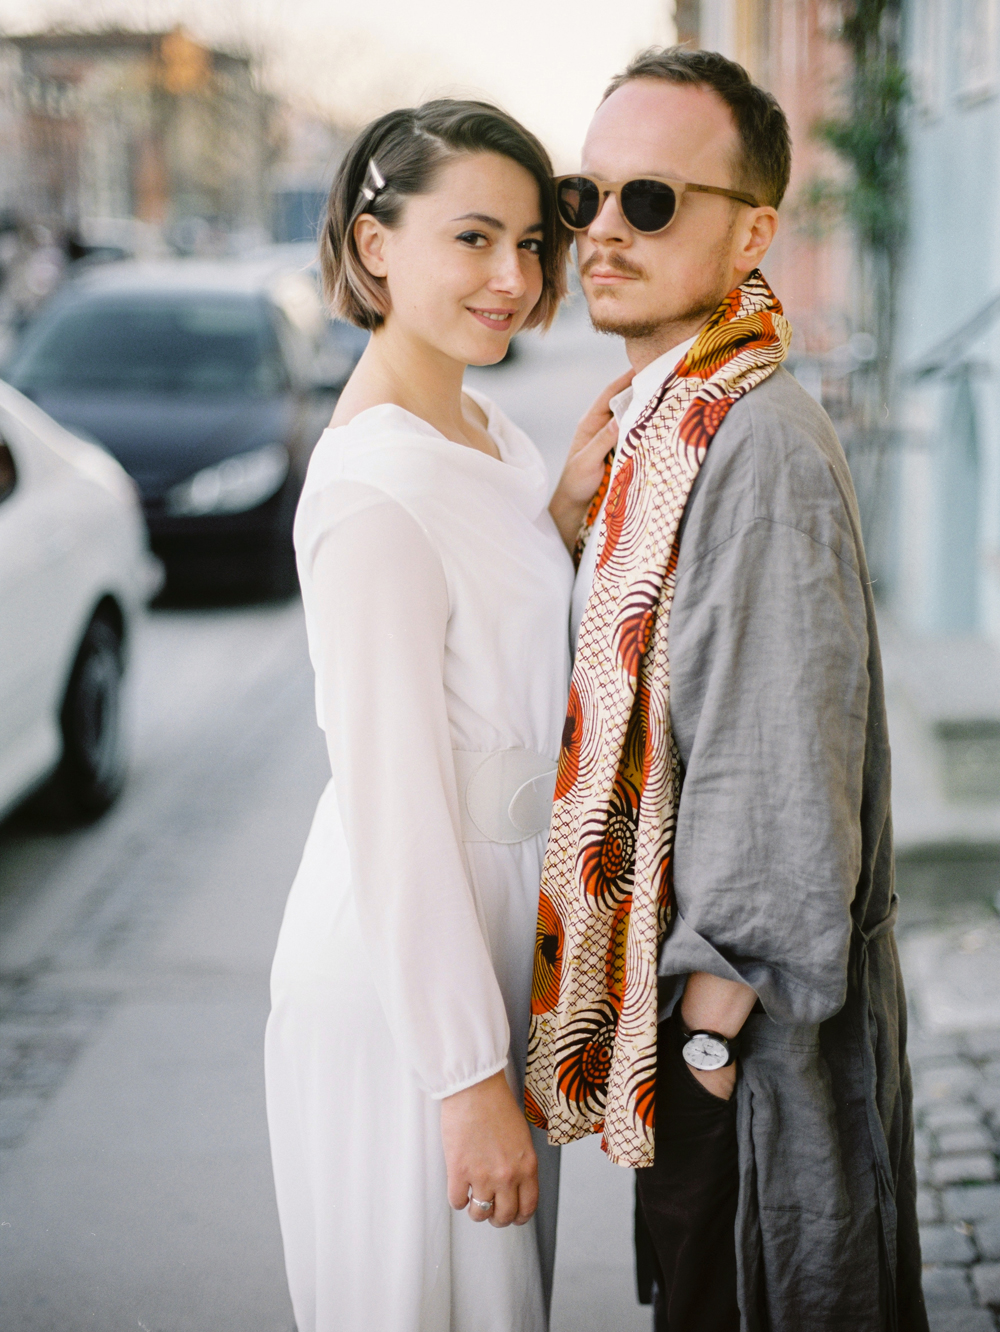 Copenhagen stret fashion | Destination fine art film photographet